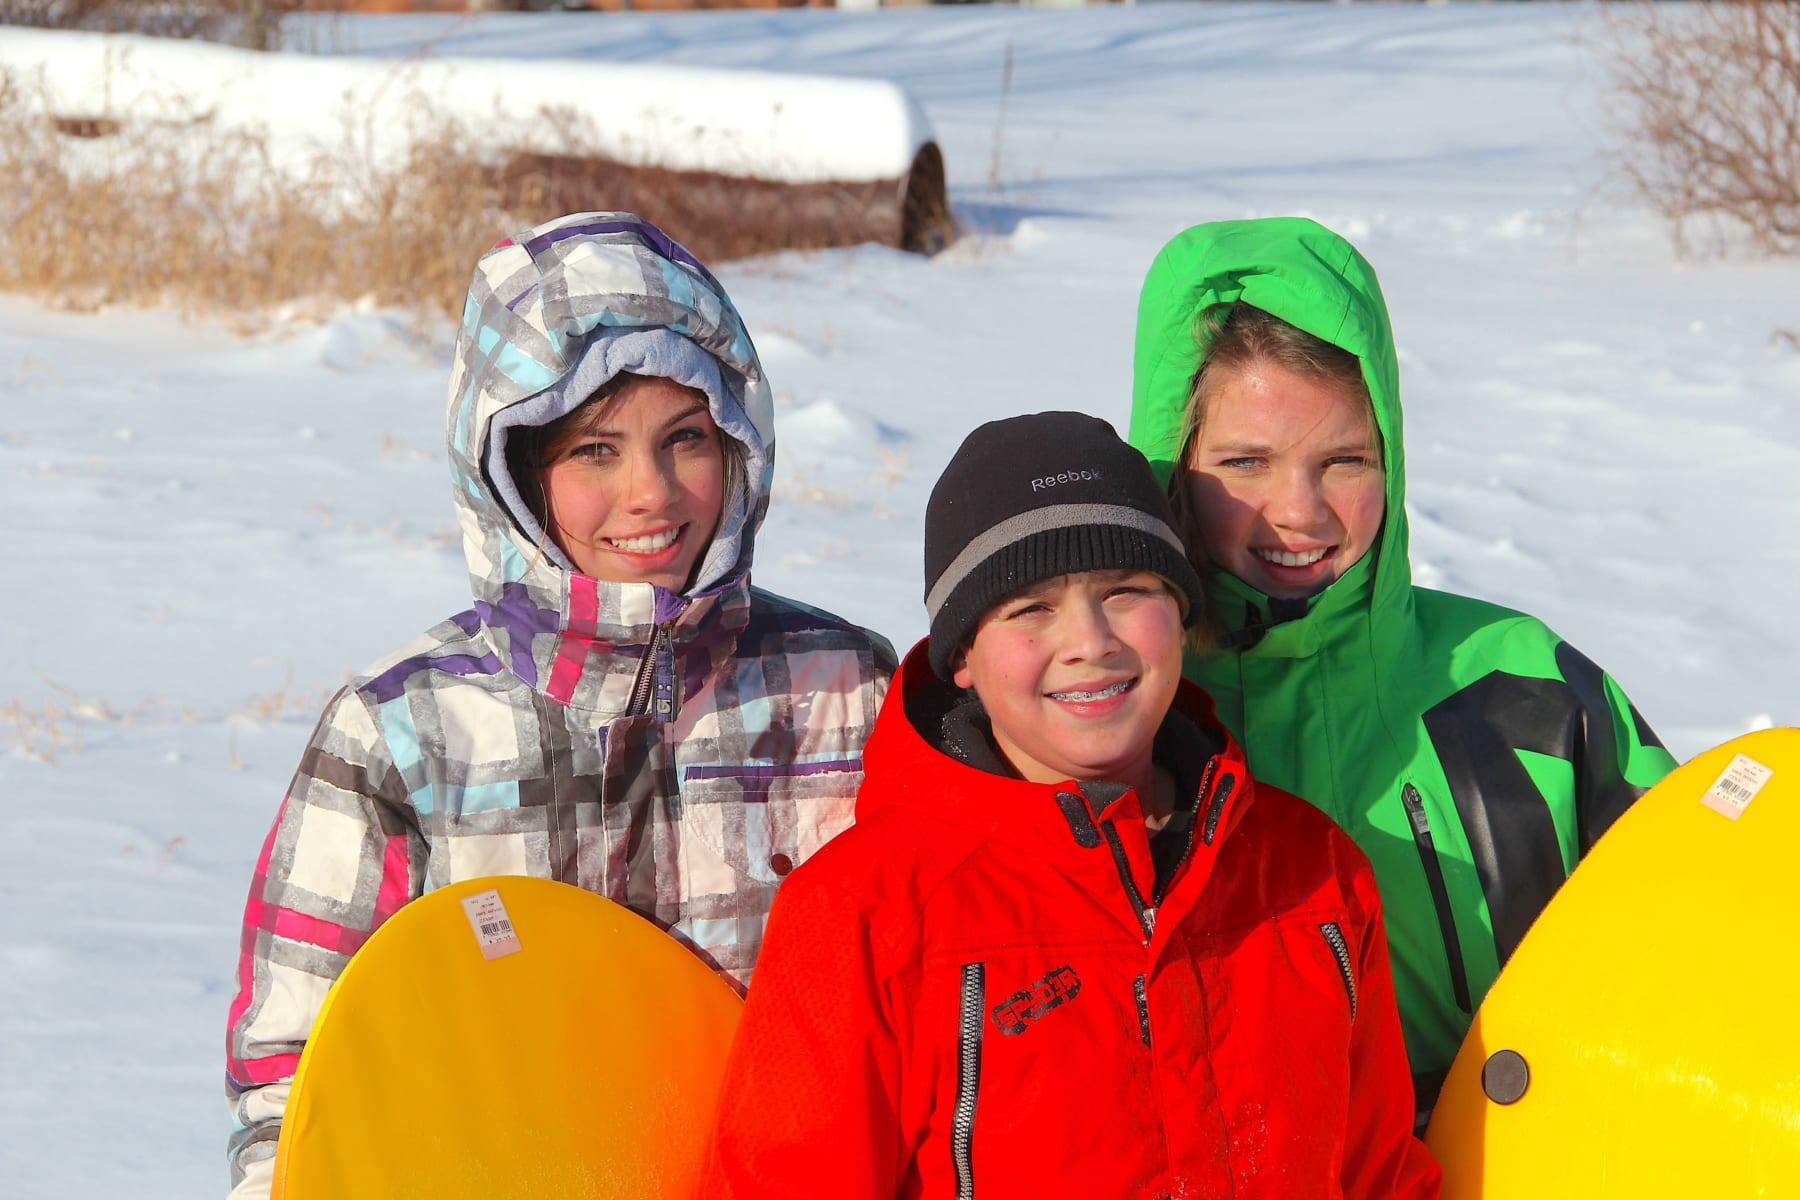 Kids in wither with sleds.